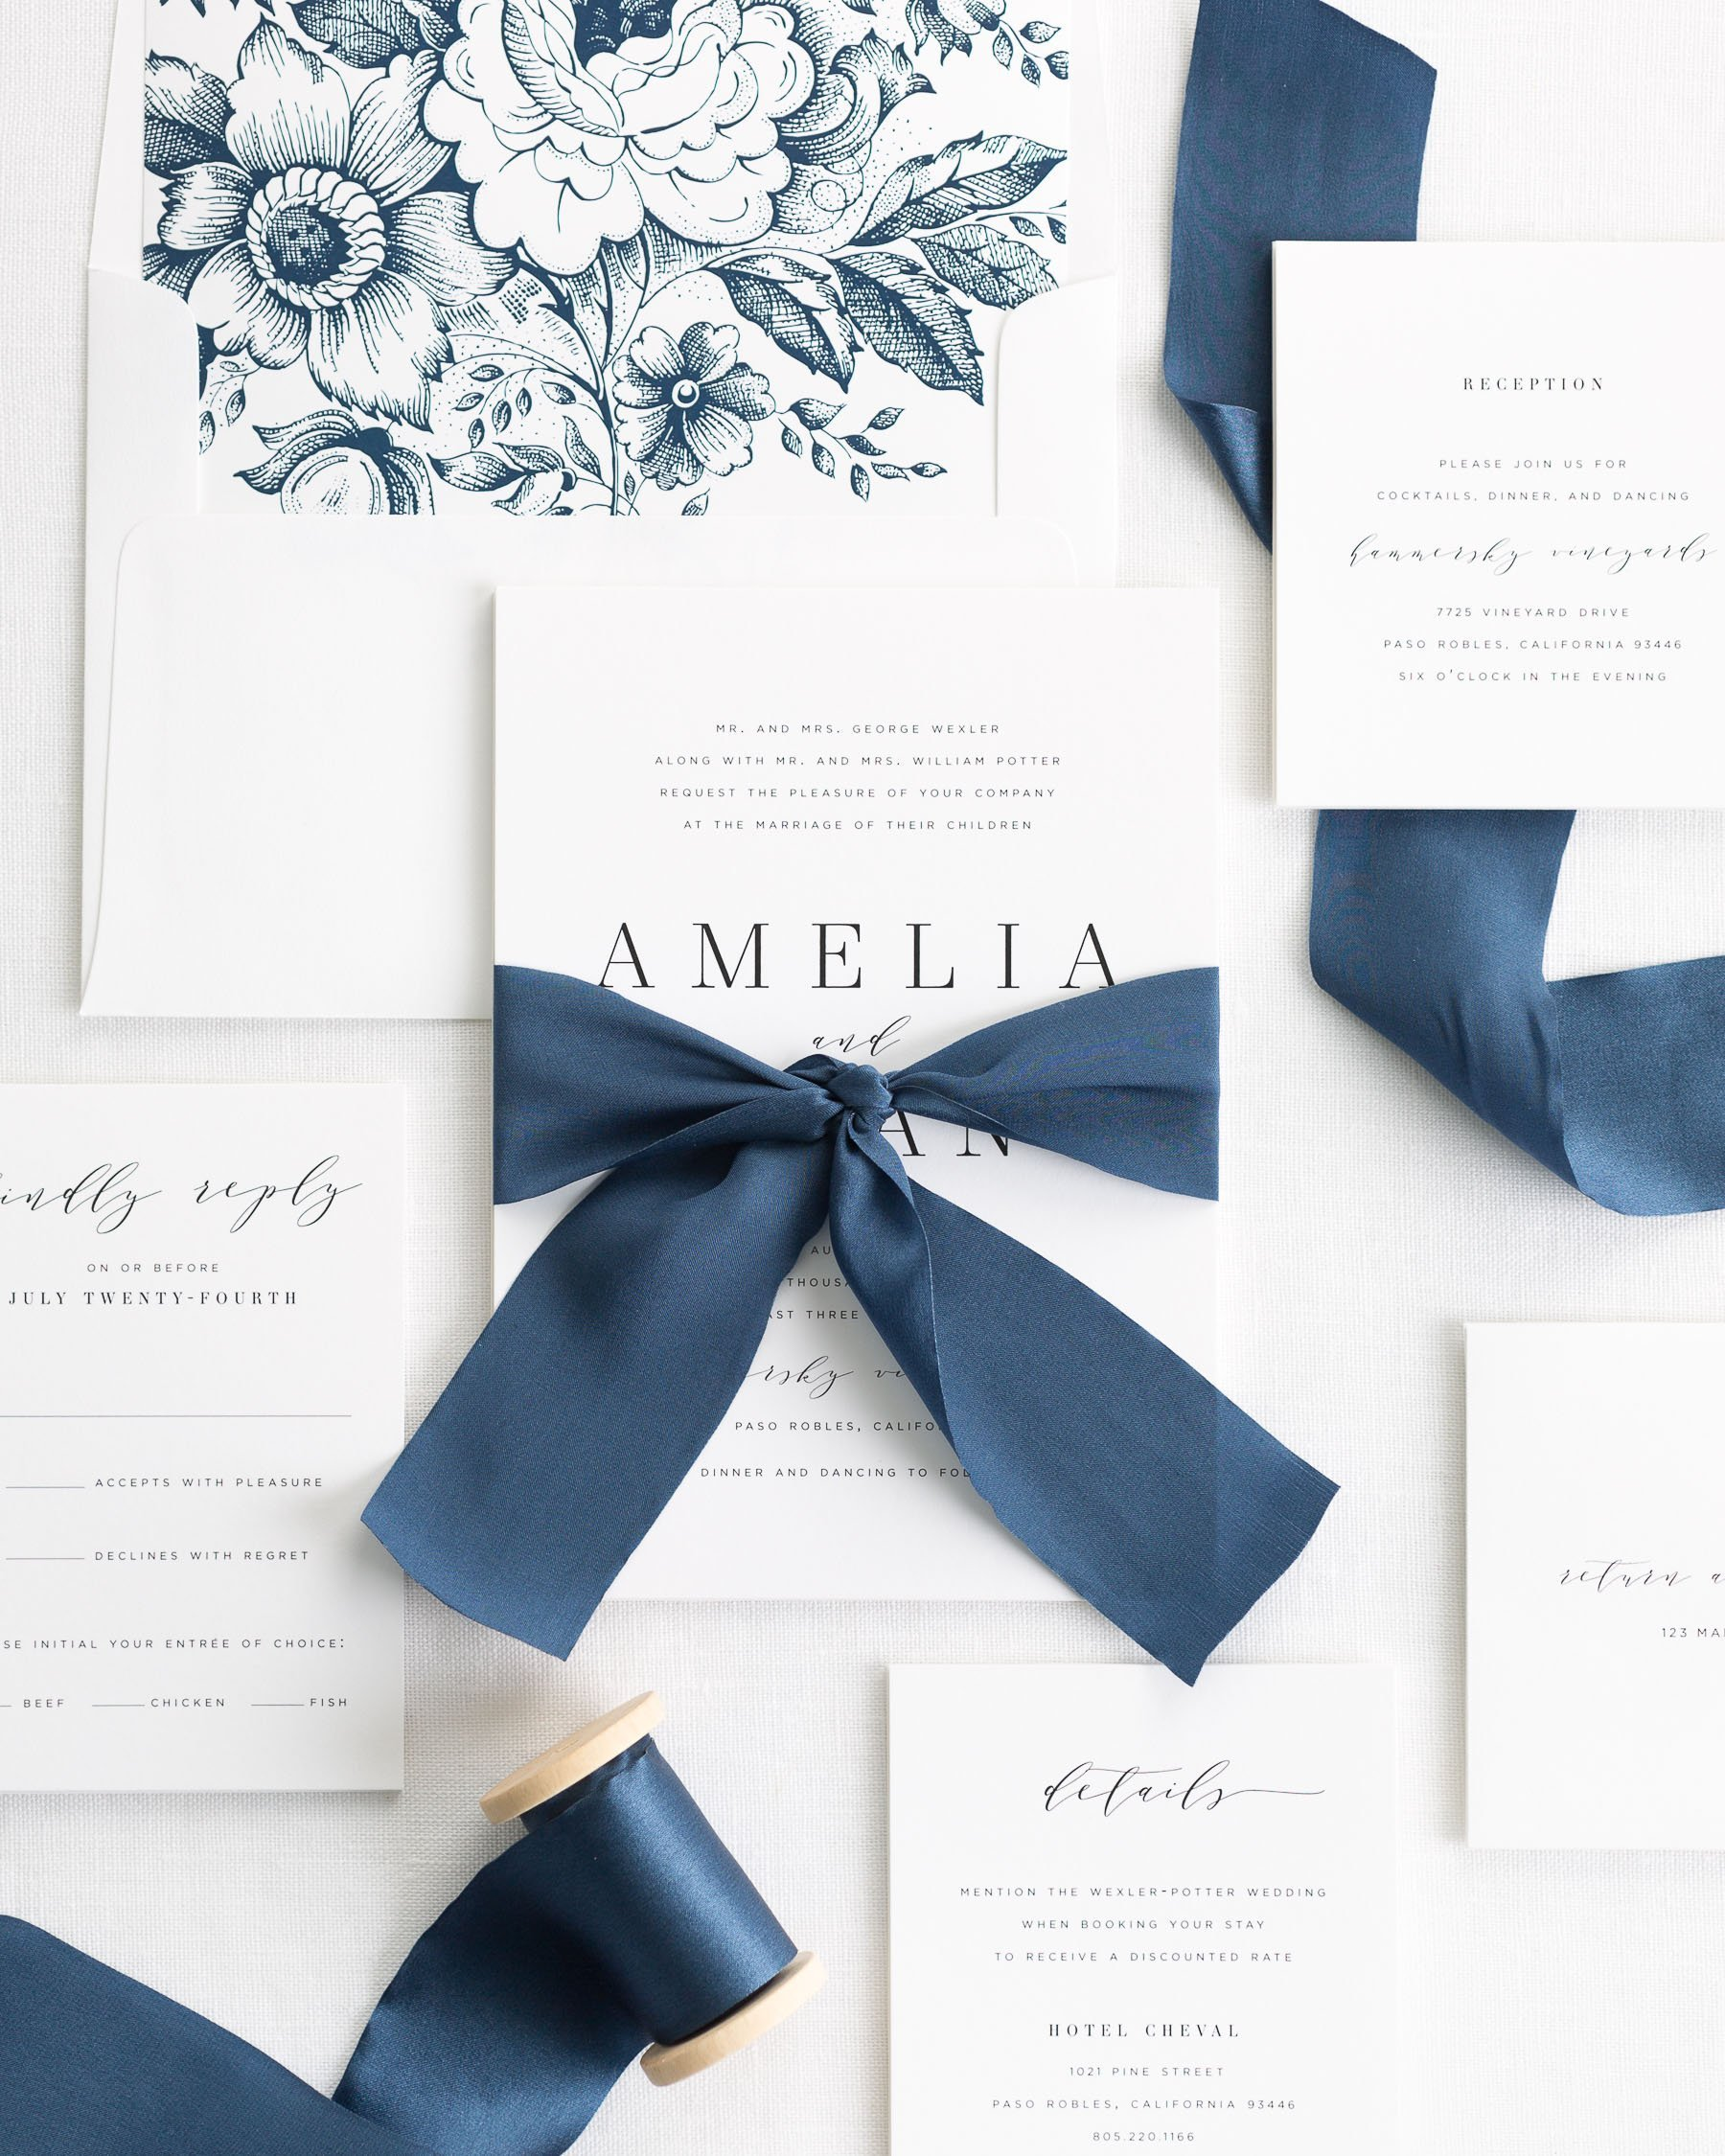 Amelia Ribbon Wedding Invitations - Ribbon Wedding ...